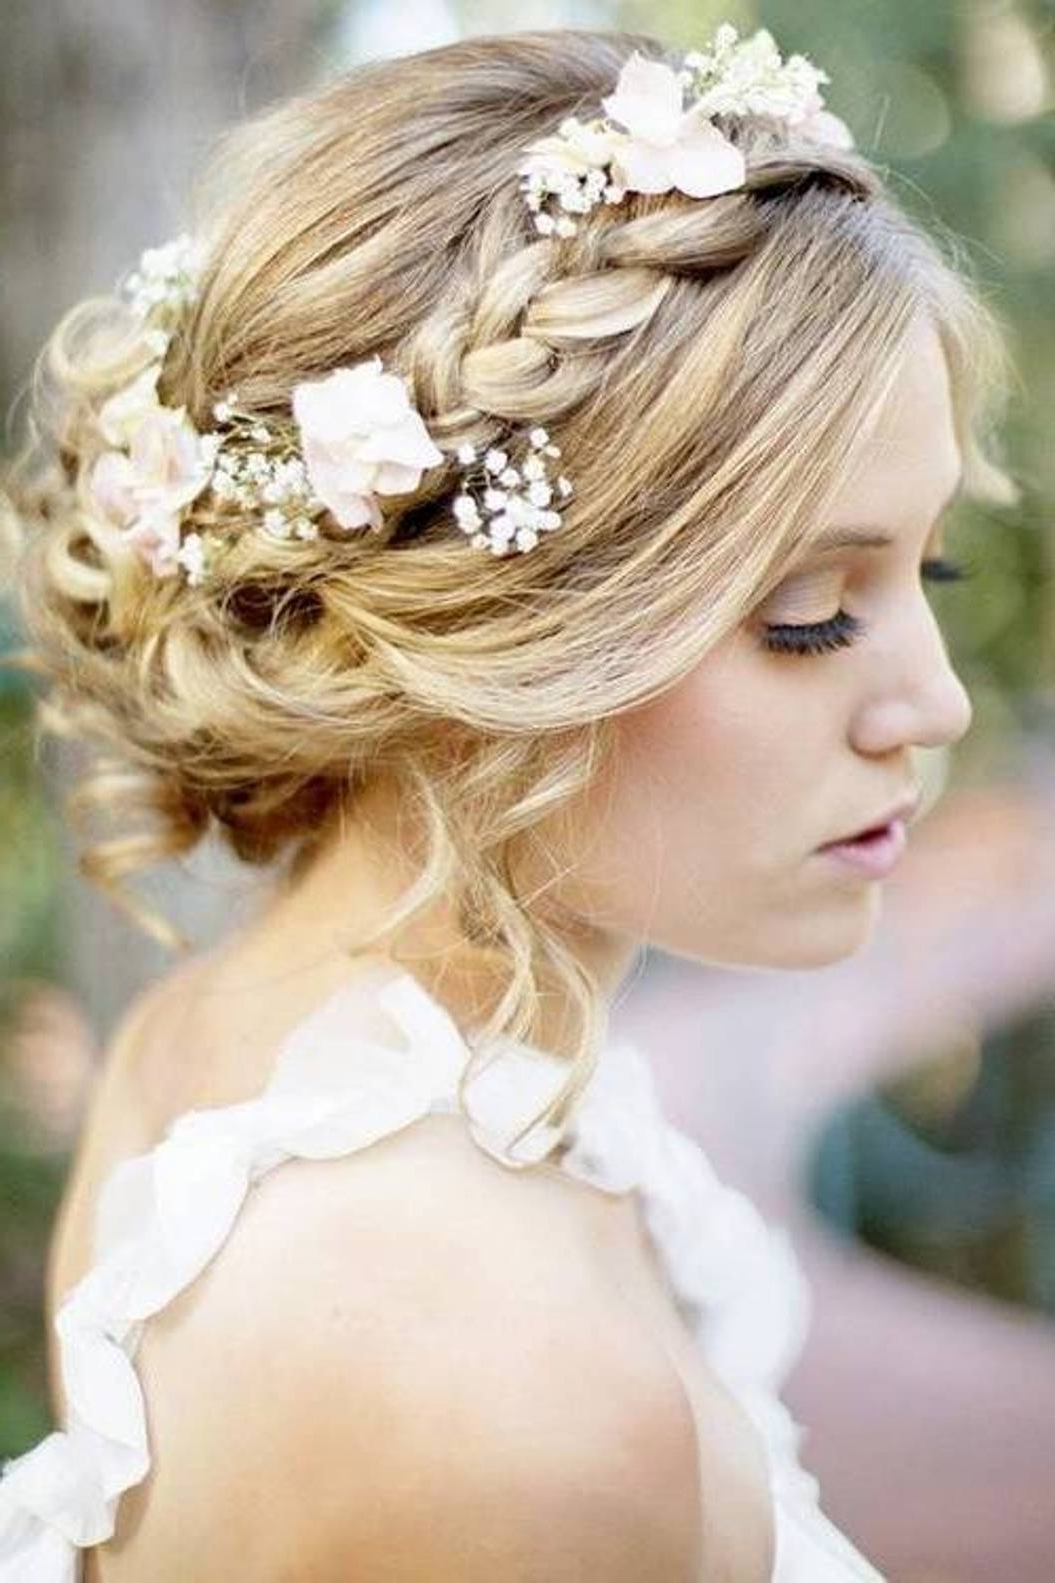 Wedding Tiaras For Short Hair – Skyranreborn In Most Recent Wedding Hairstyles For Shoulder Length Hair With Veil (View 15 of 15)